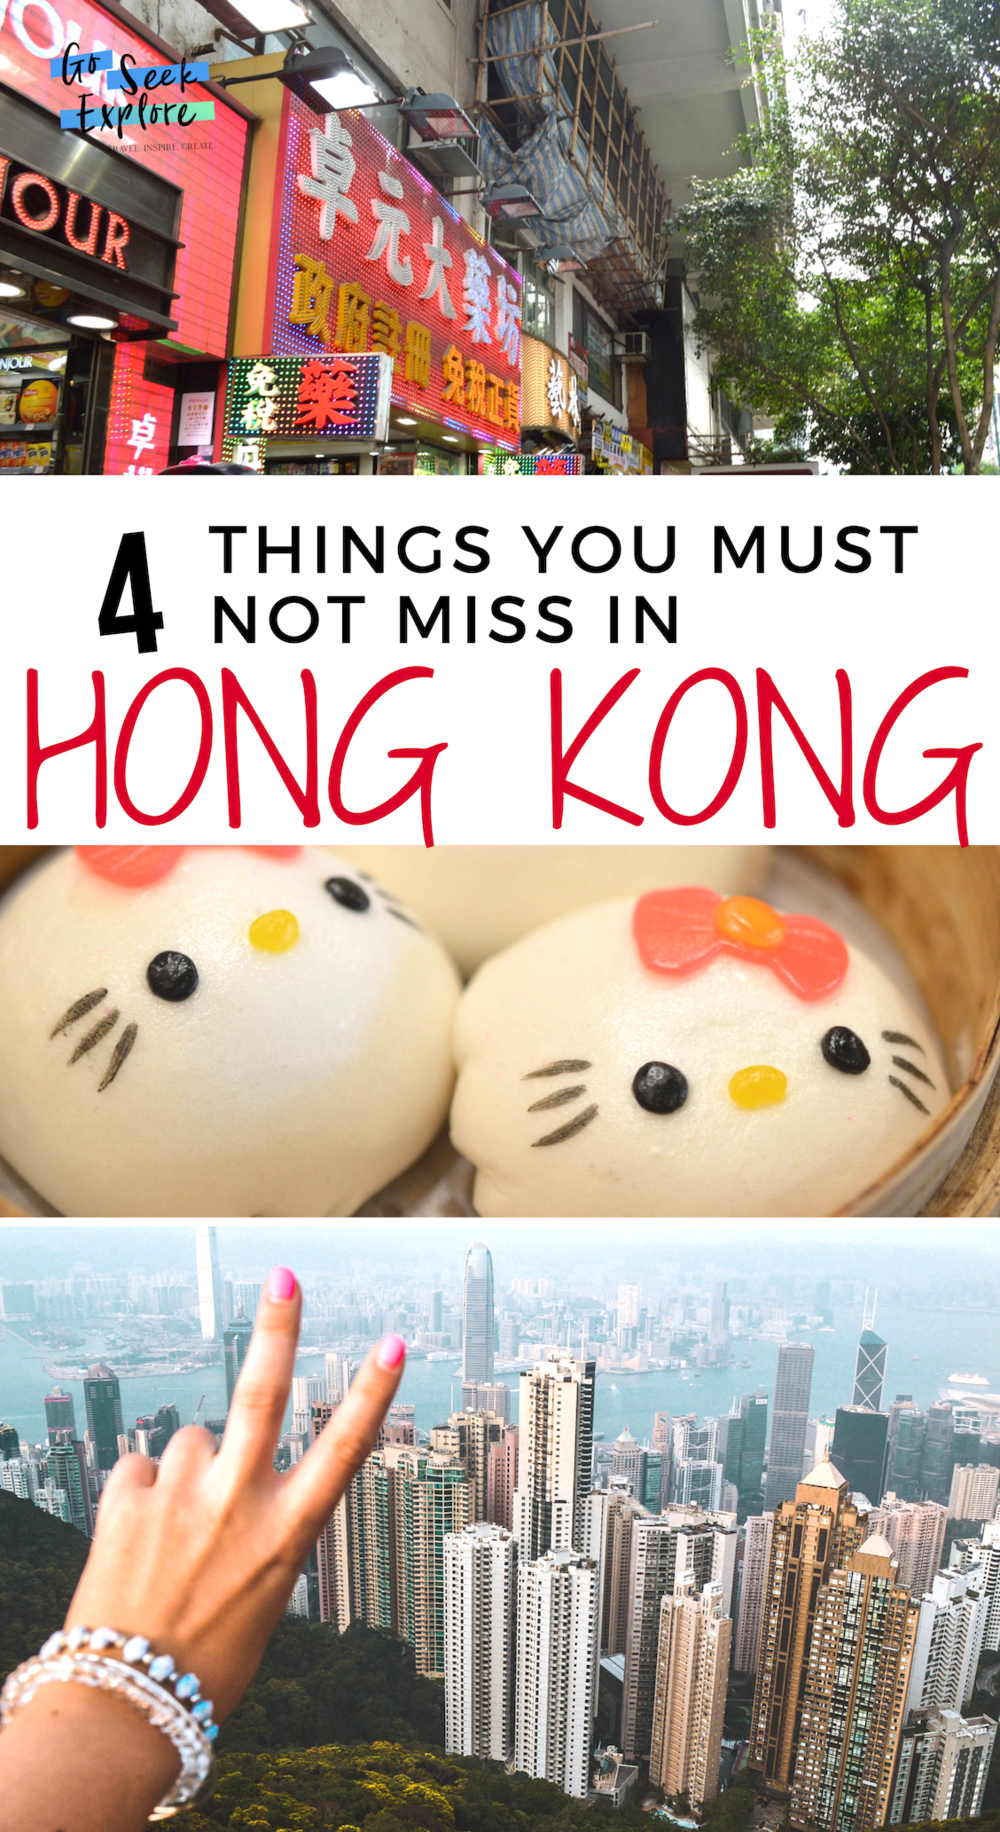 things-must-not-miss-hong-kong.png